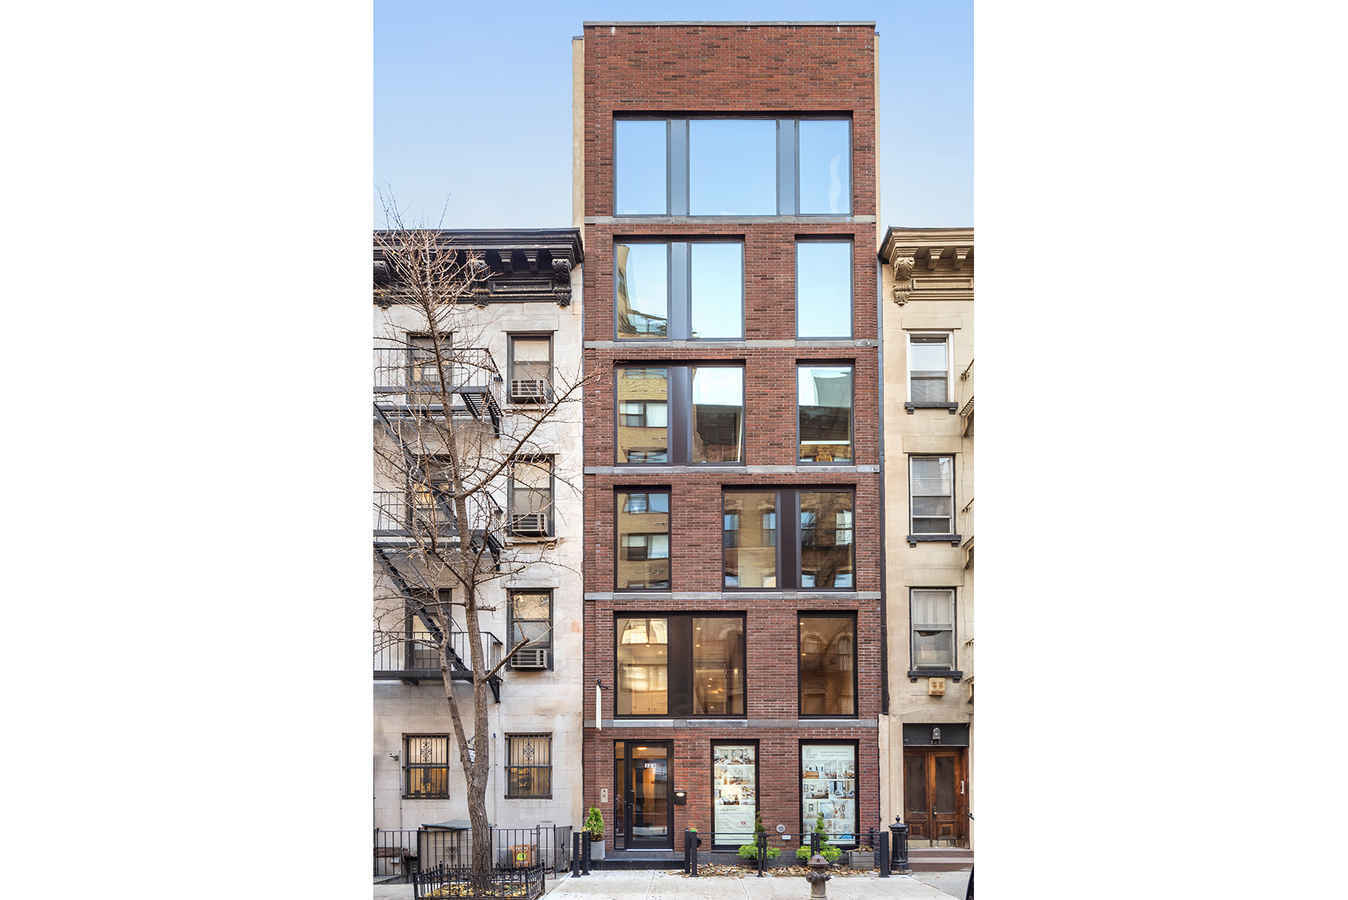 Apartment for sale at 323 East 52nd Street, Apt PH